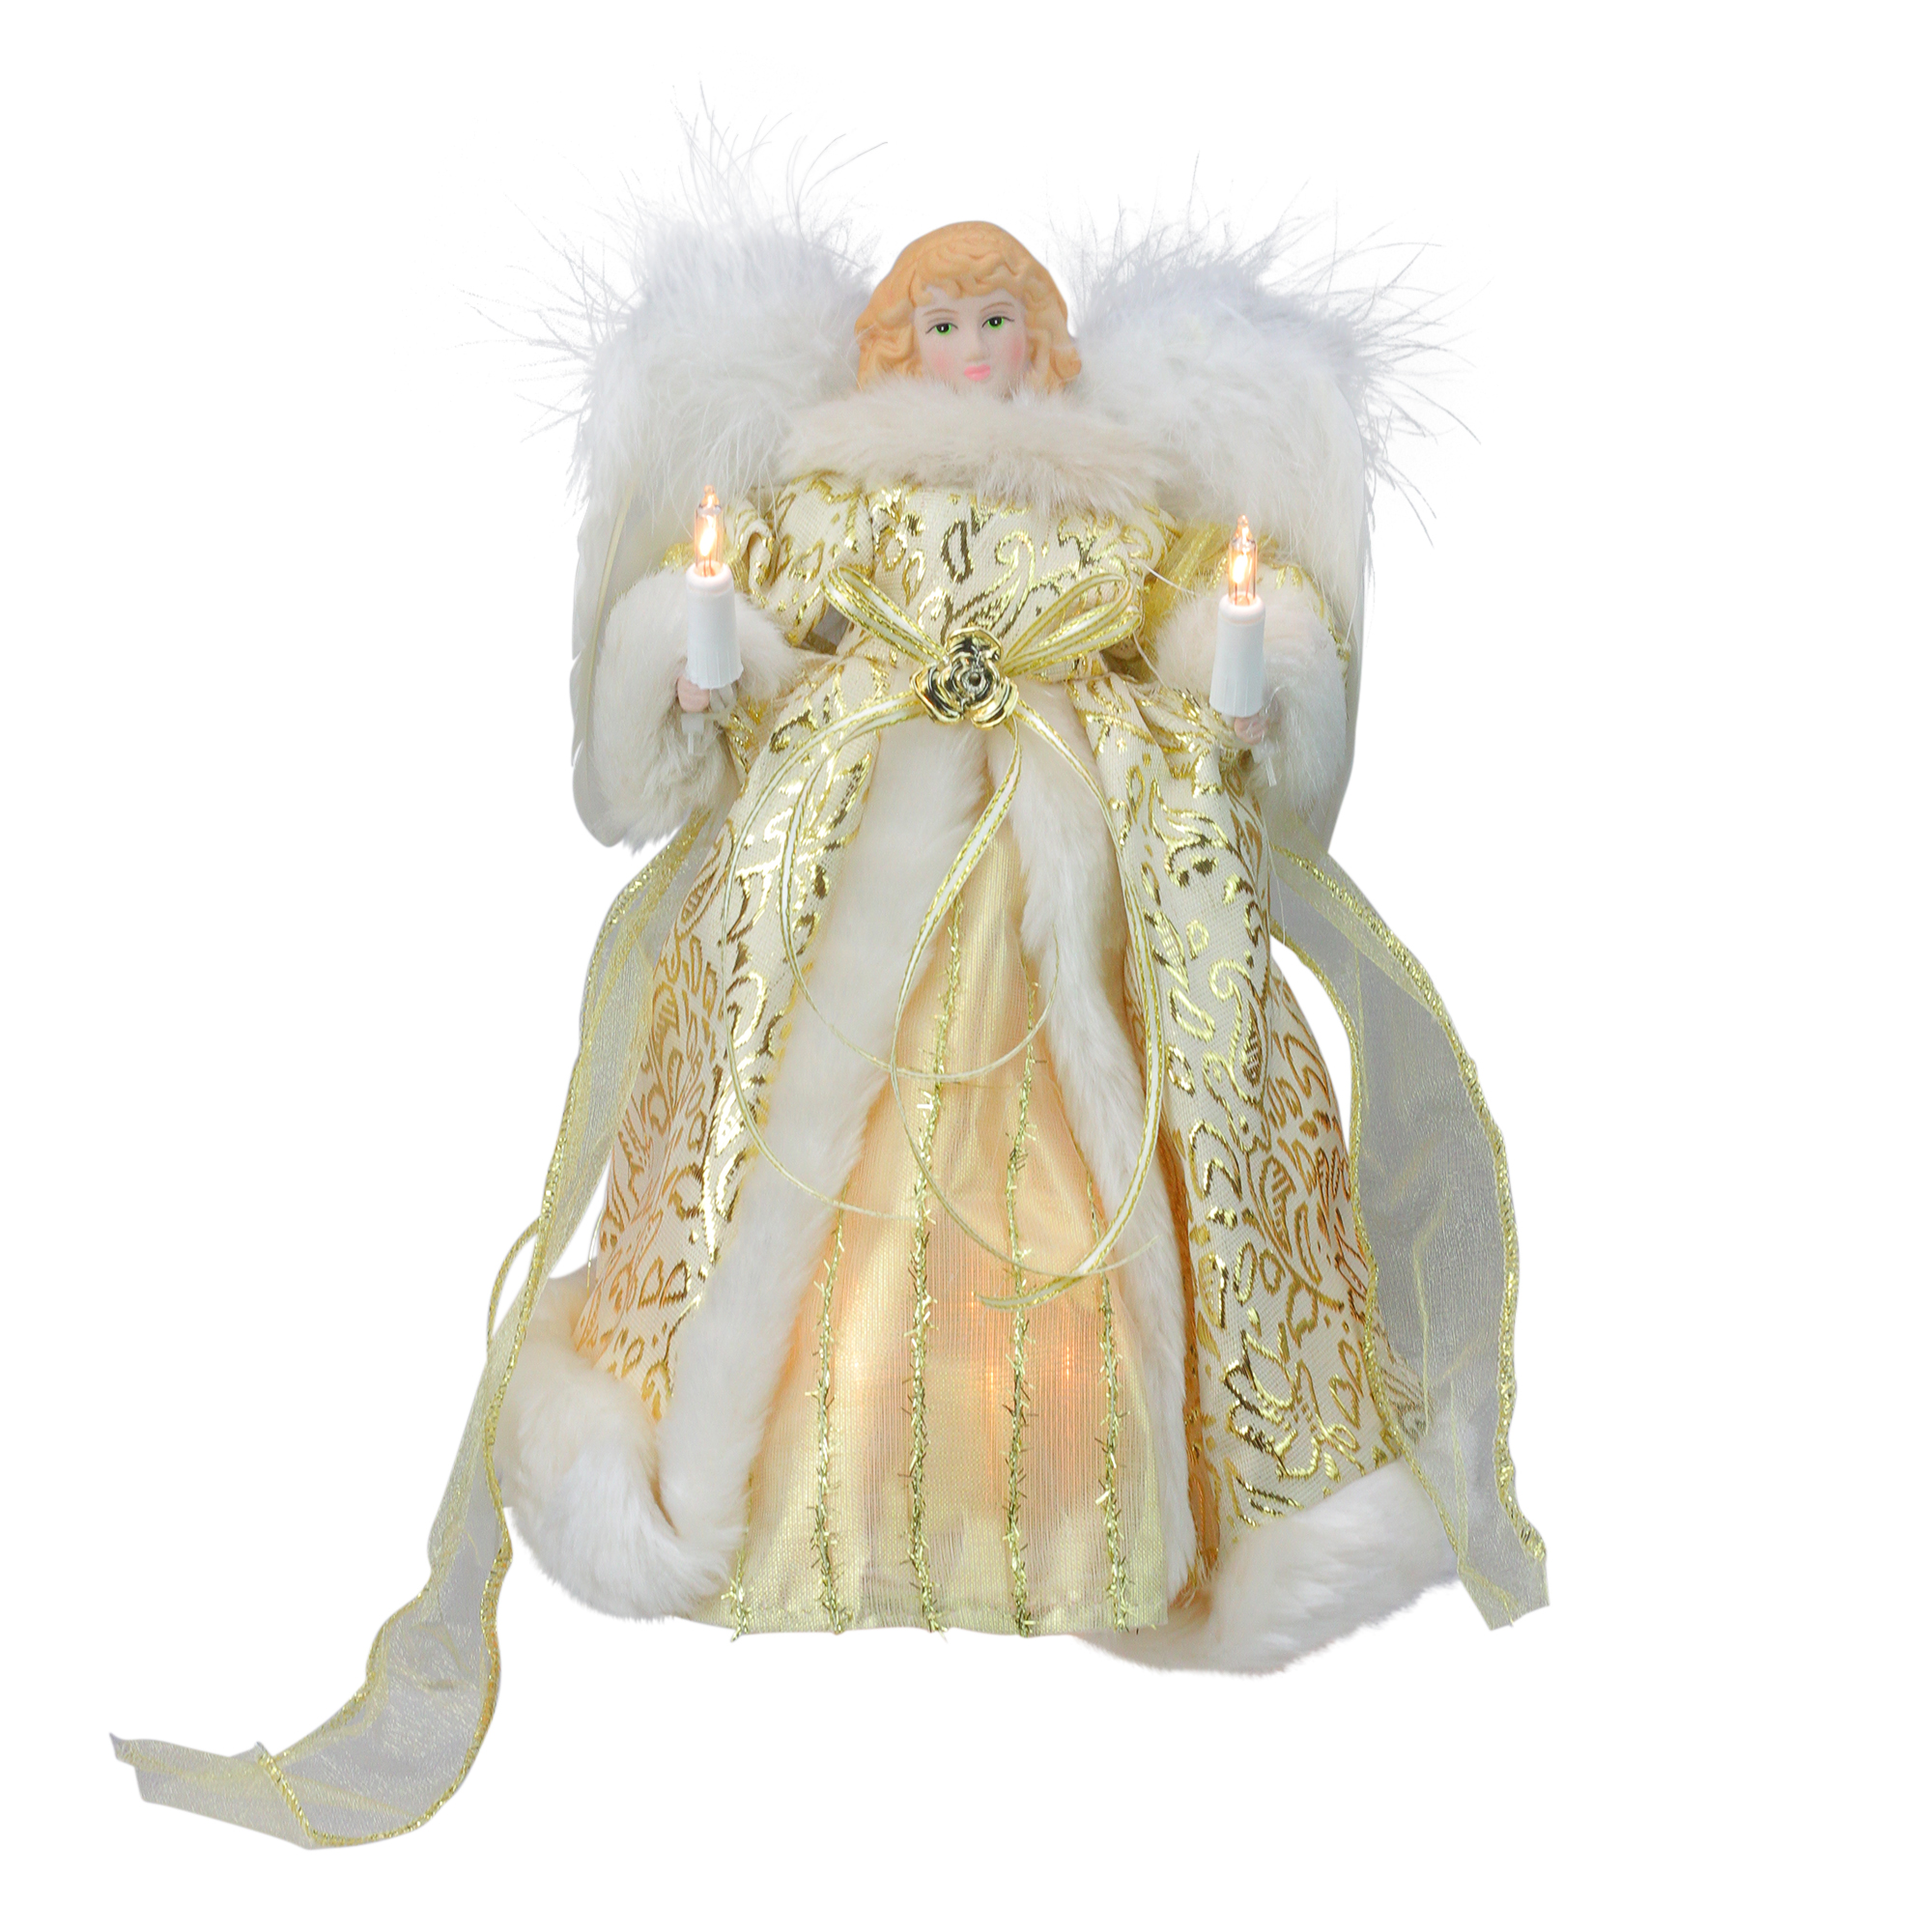 "10"" Lighted Fluffy Winged White and Gold Angel Christmas Tree Topper - Clear Lights"